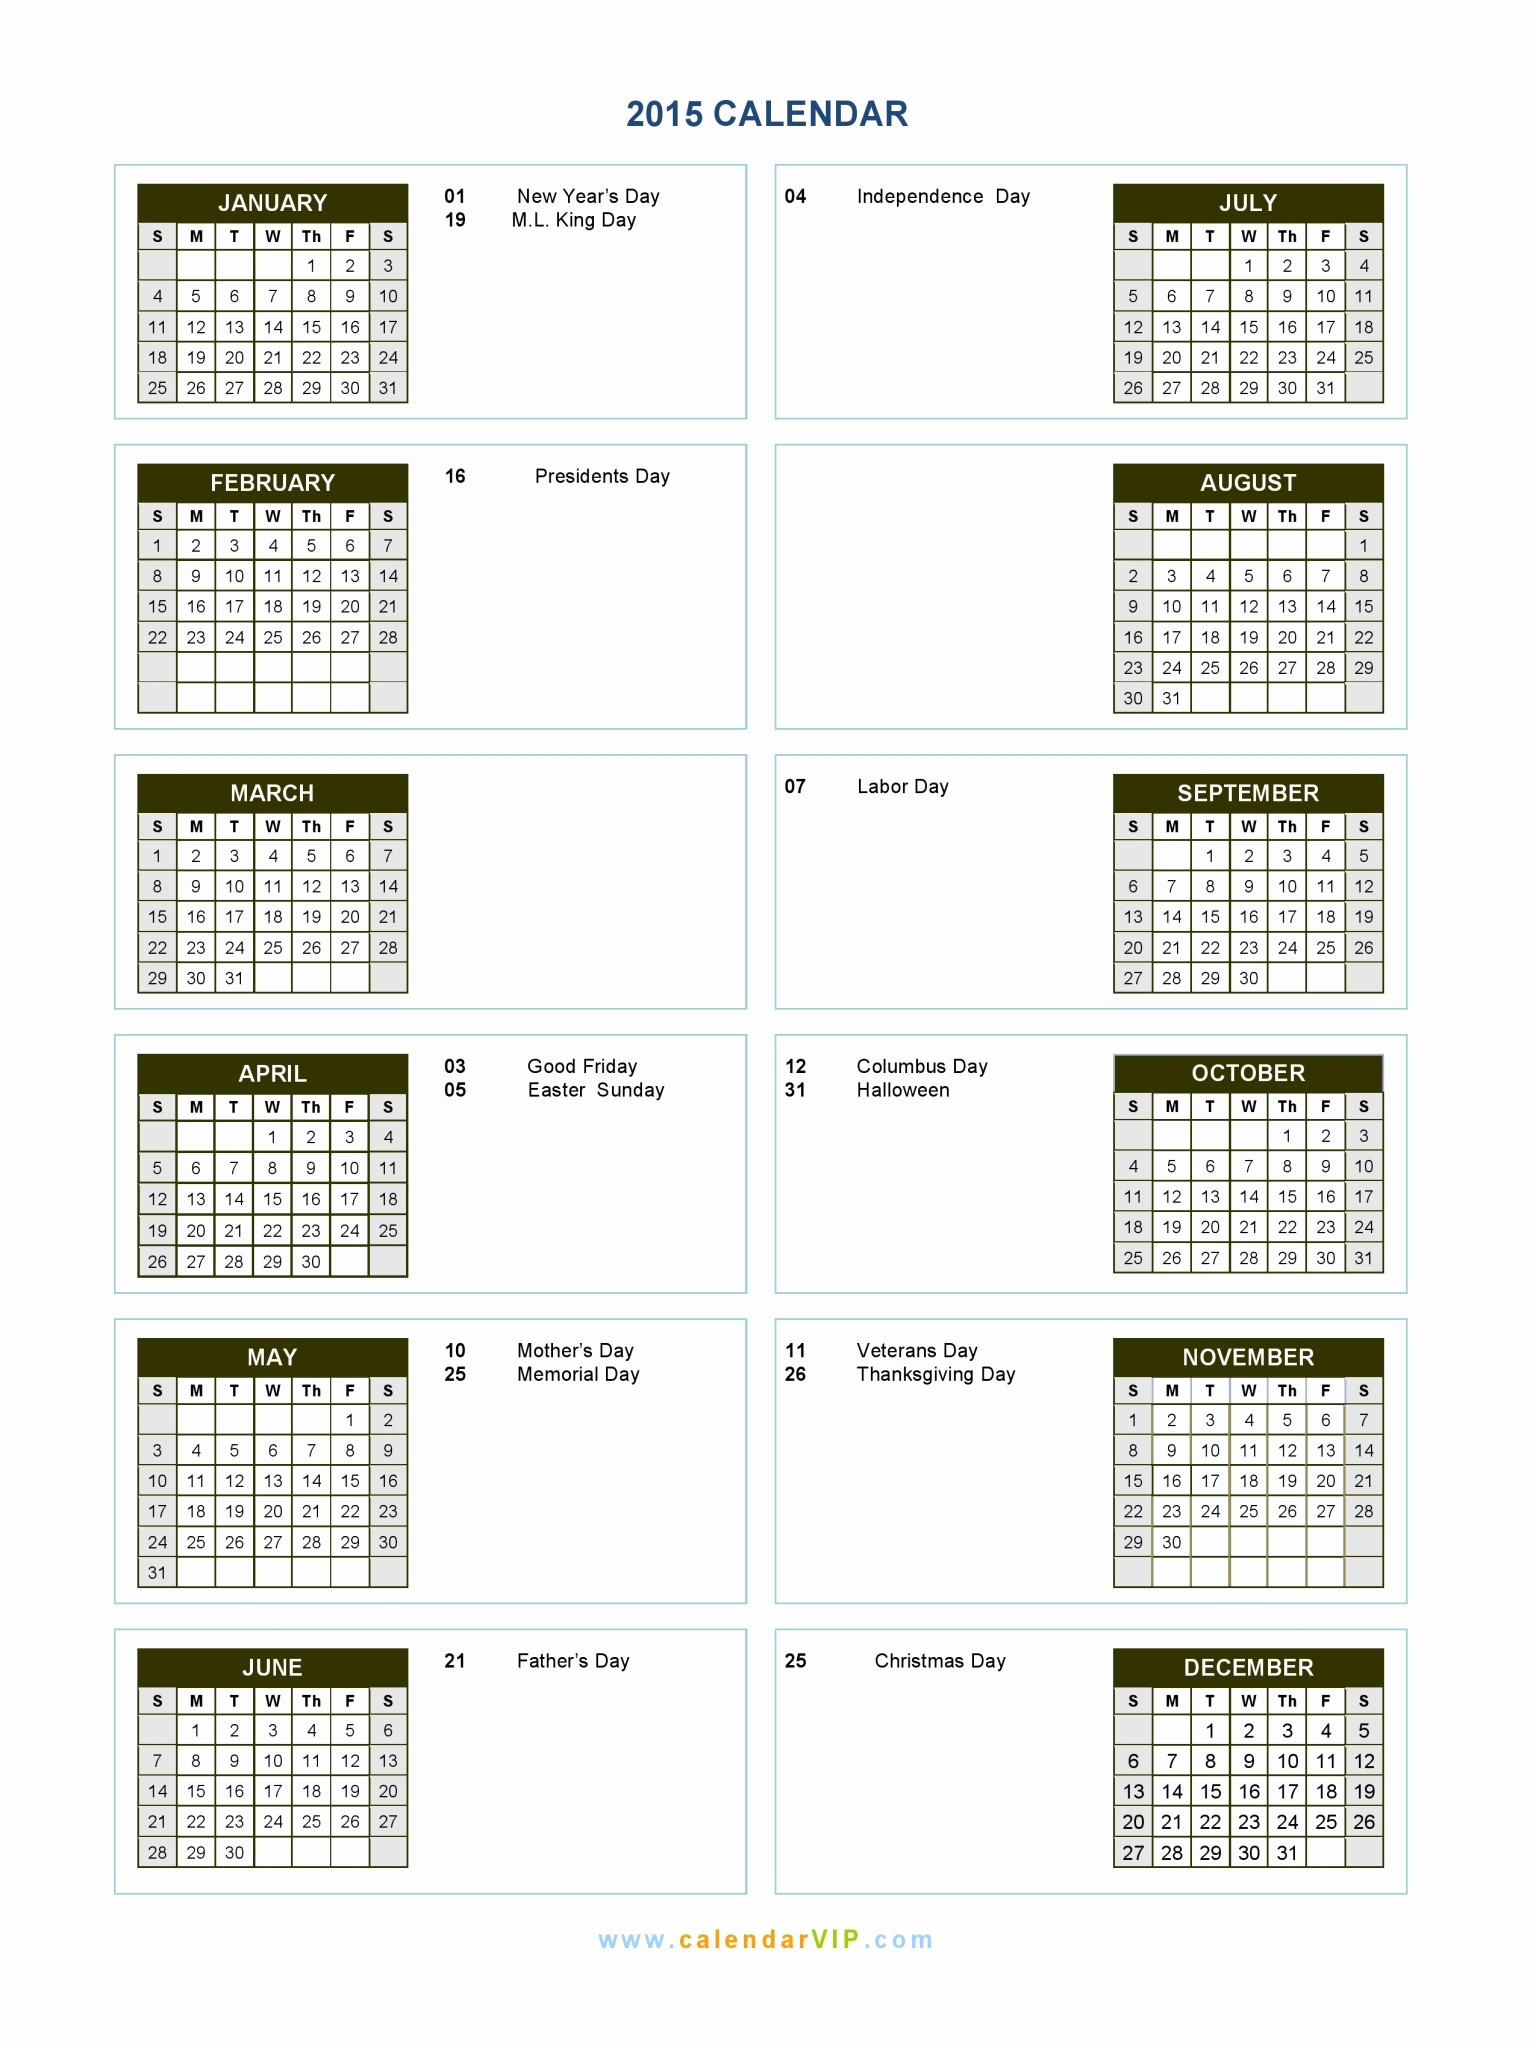 Calendar Of events Template 2015 Luxury 2015 Calendar Blank Printable Calendar Template In Pdf